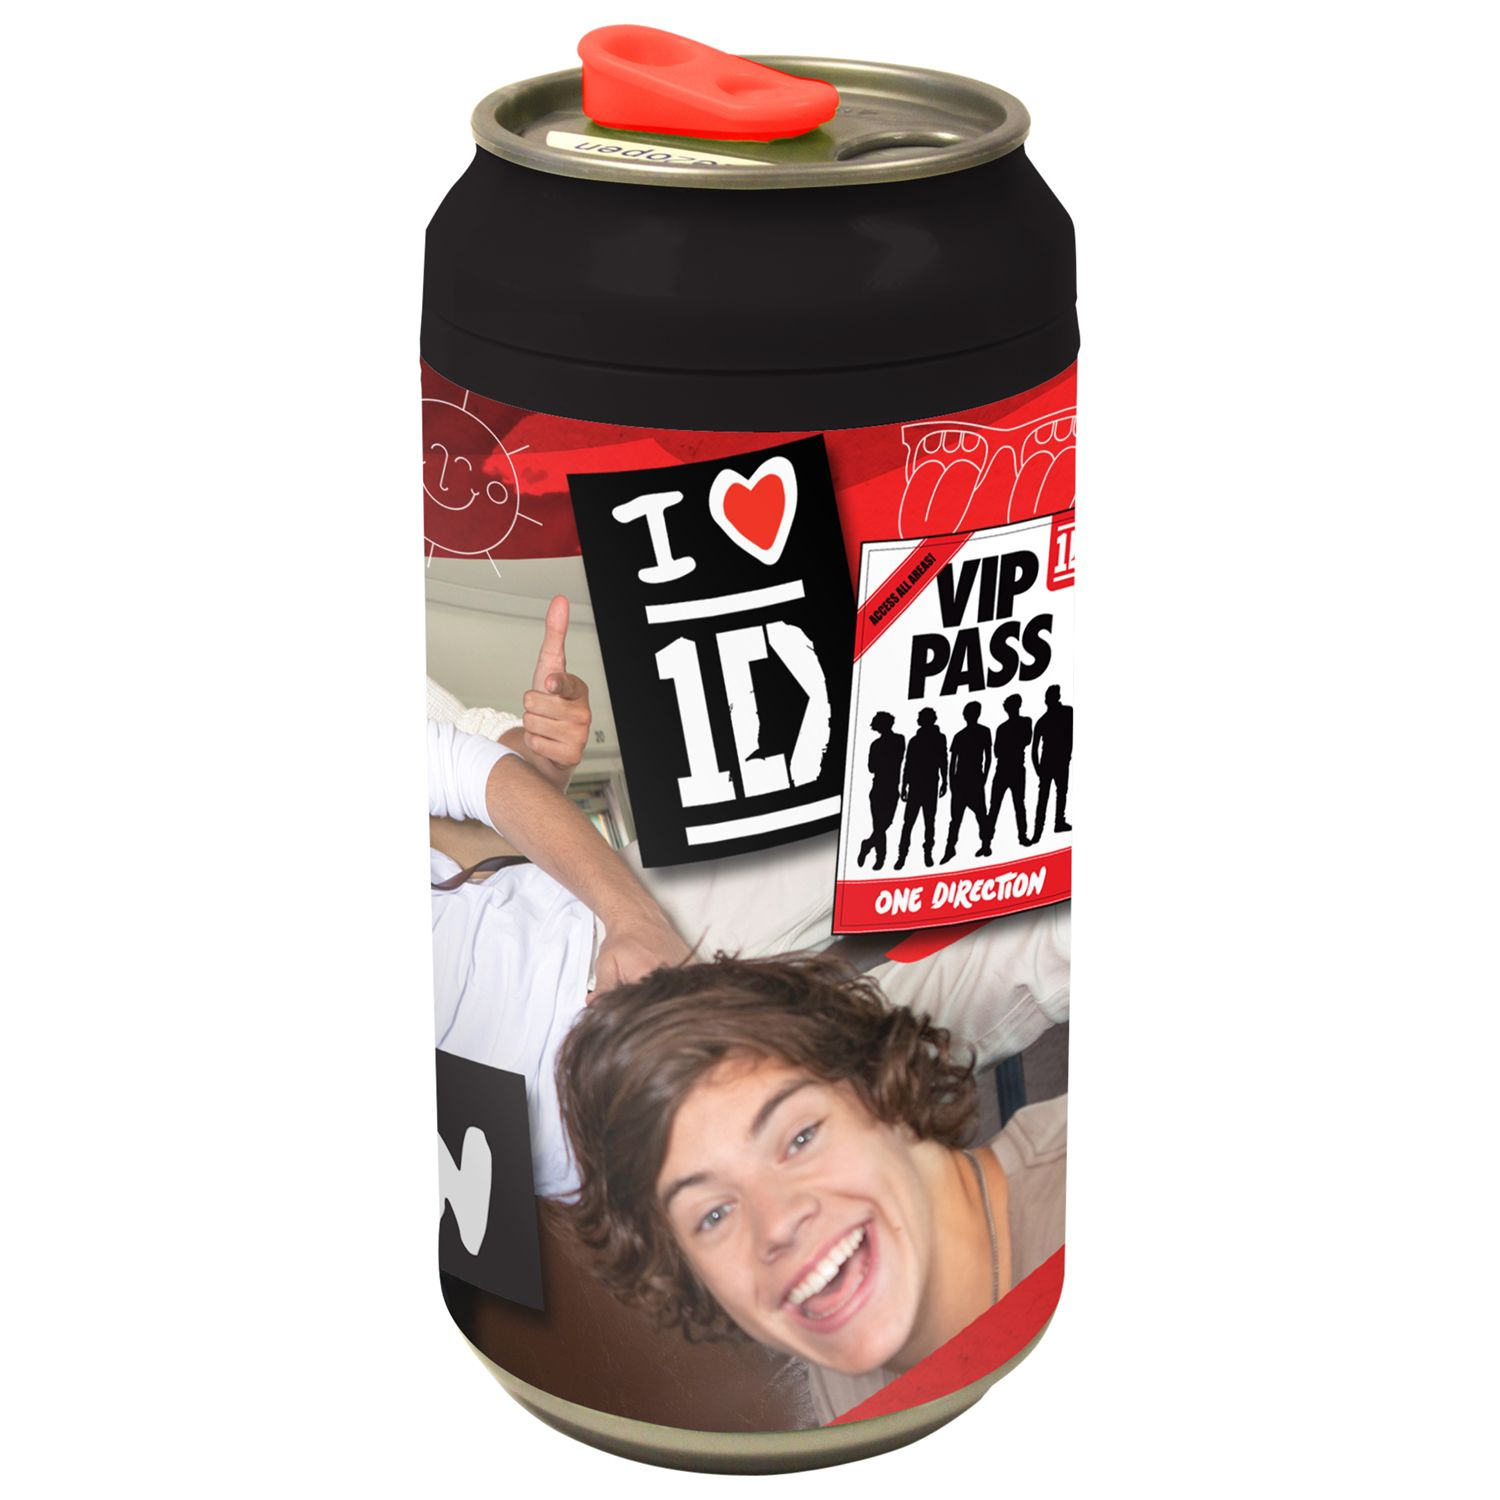 Speakmark One Direction Drinks Can